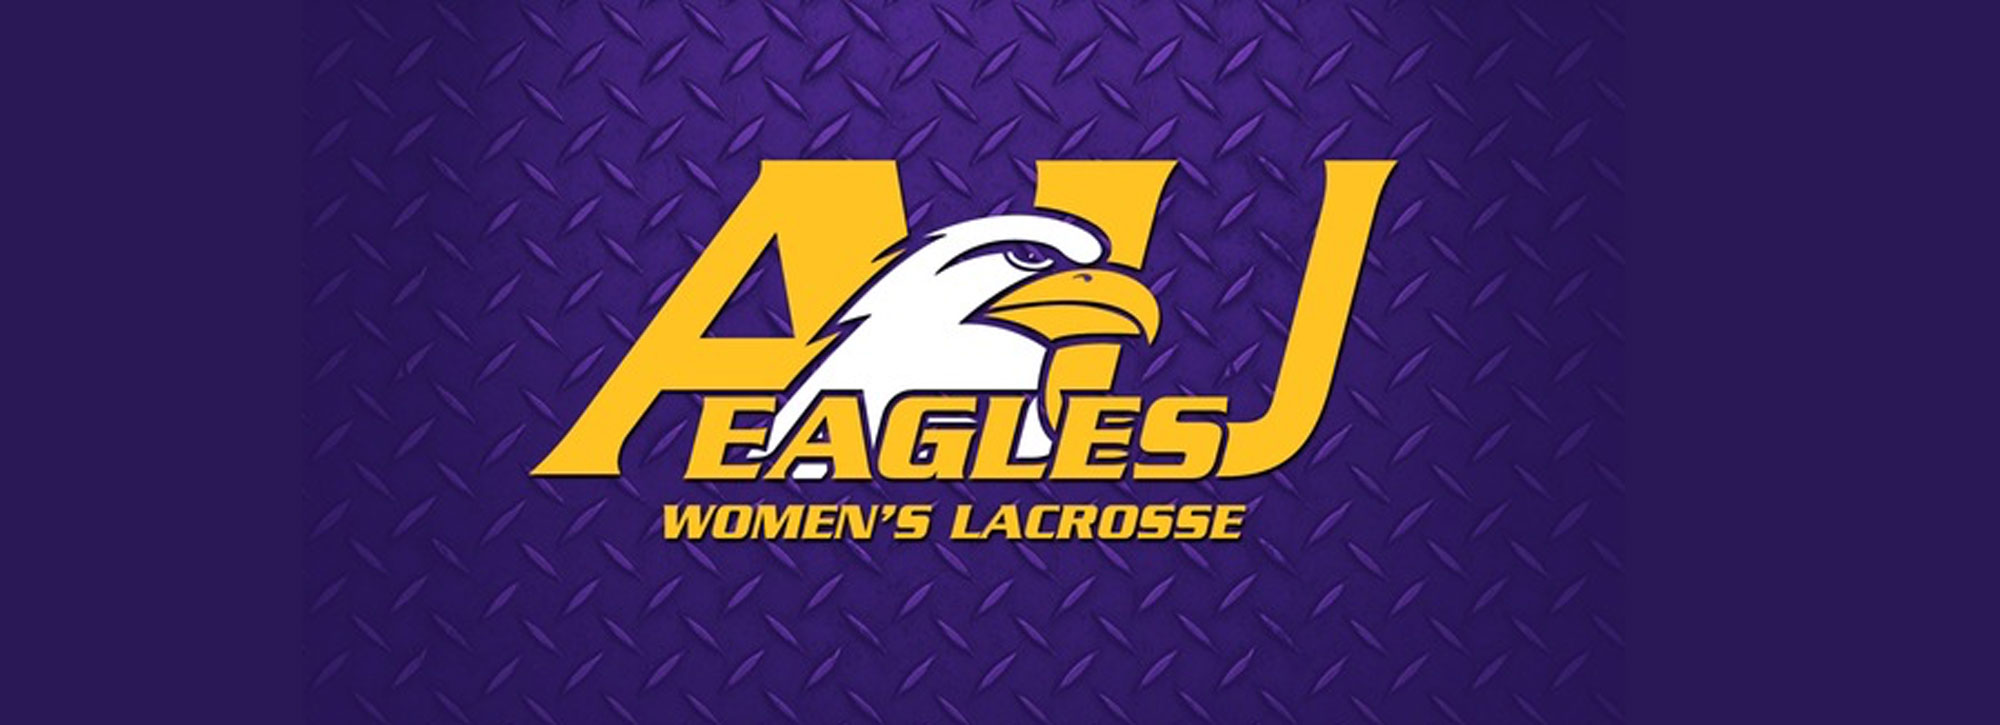 Ashland Names Williamson First Women's Lacrosse Head Coach